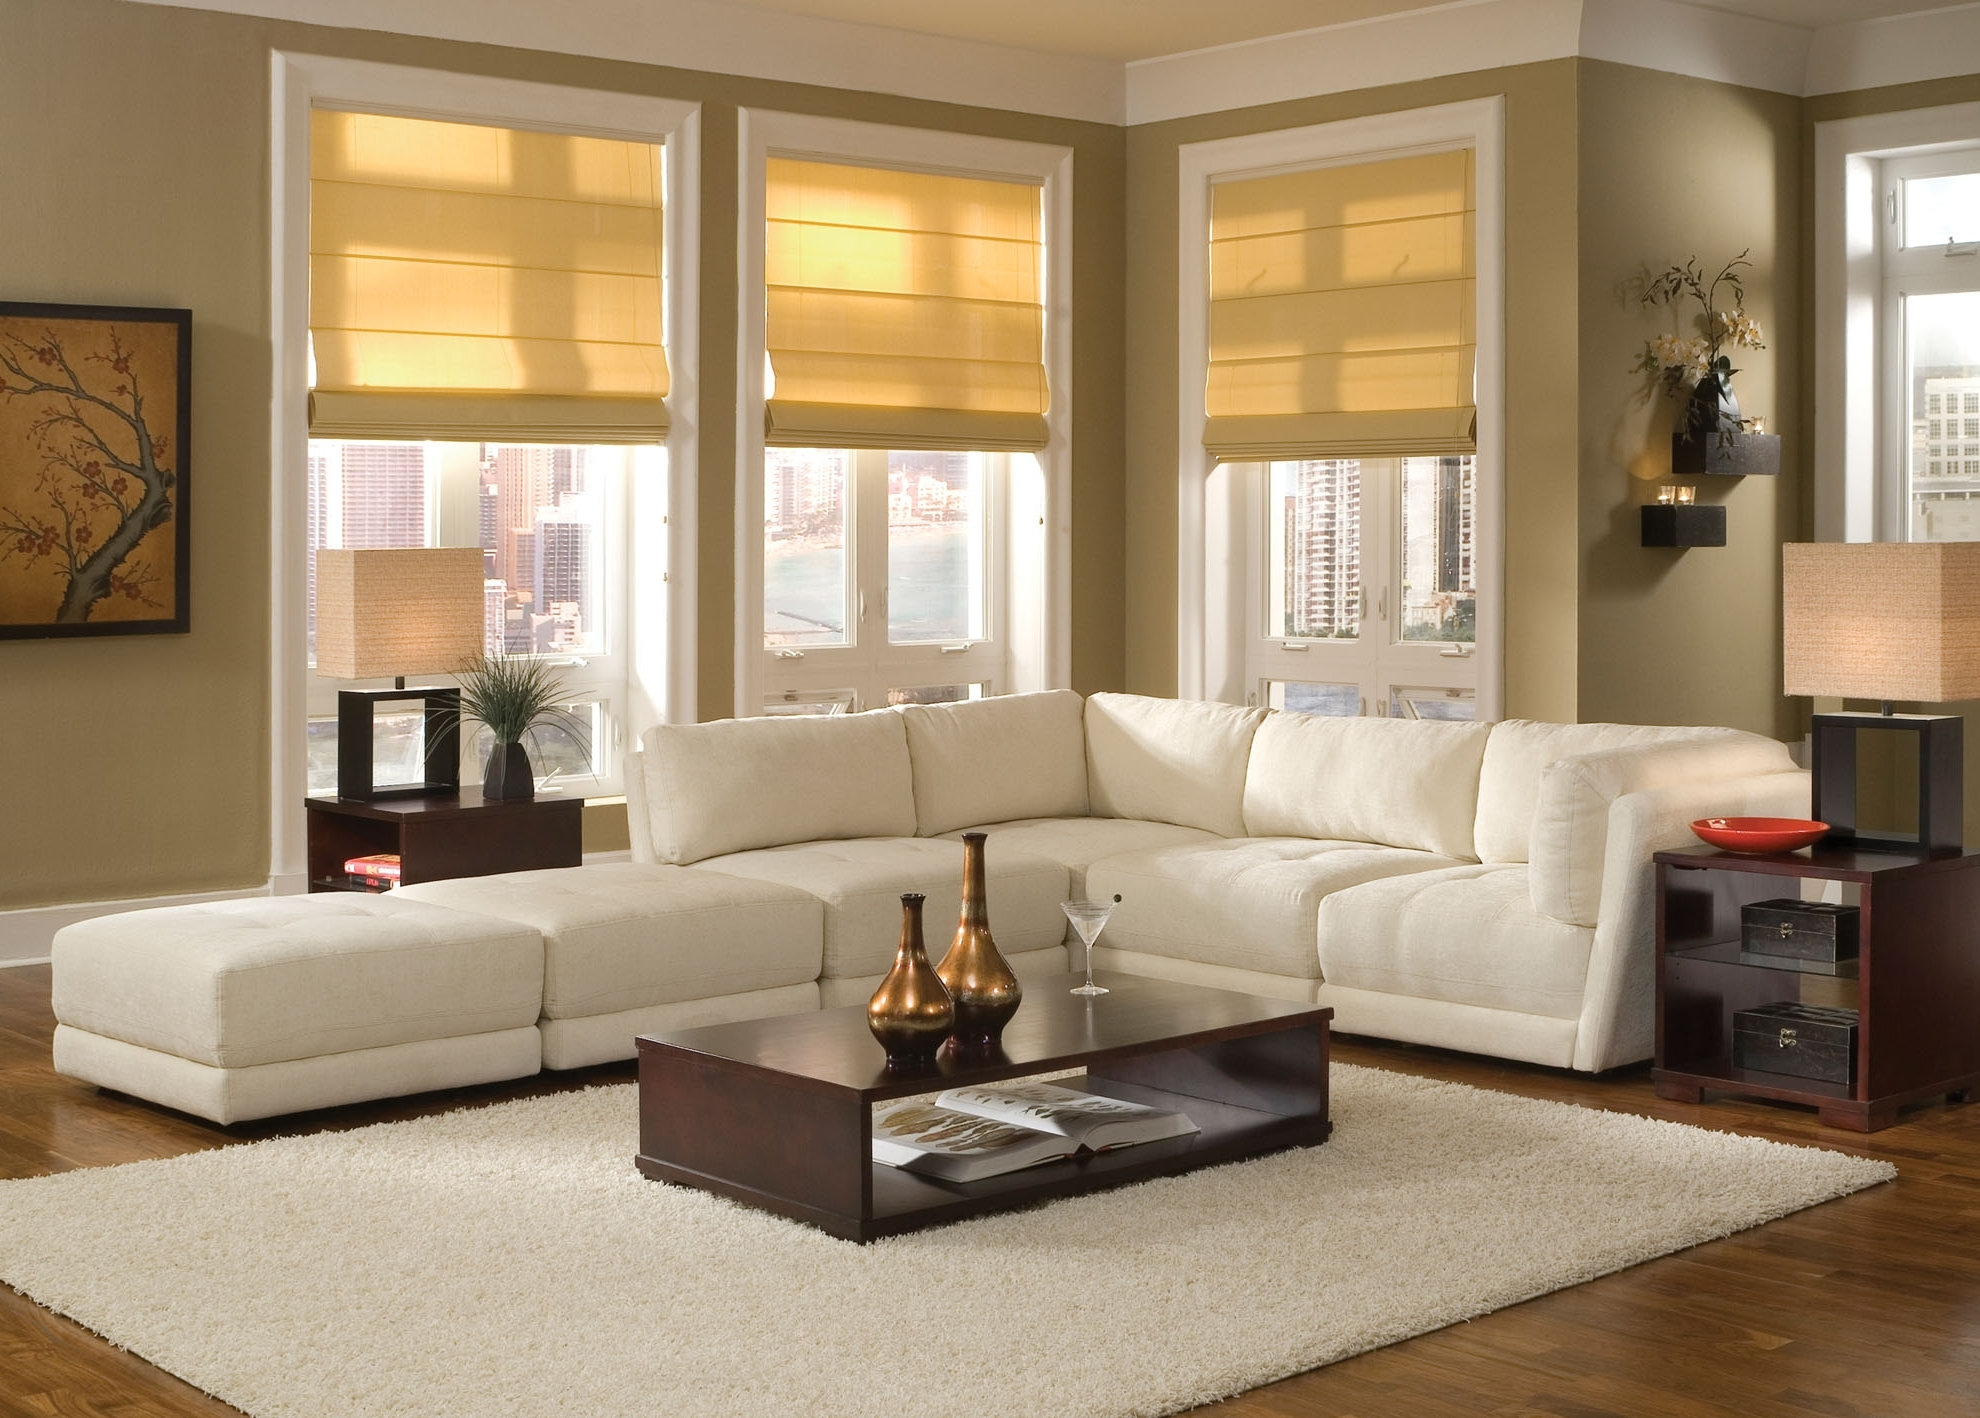 Trendy White Sofa Design Ideas & Pictures For Living Room Intended For Sectional Sofas Decorating (View 9 of 15)